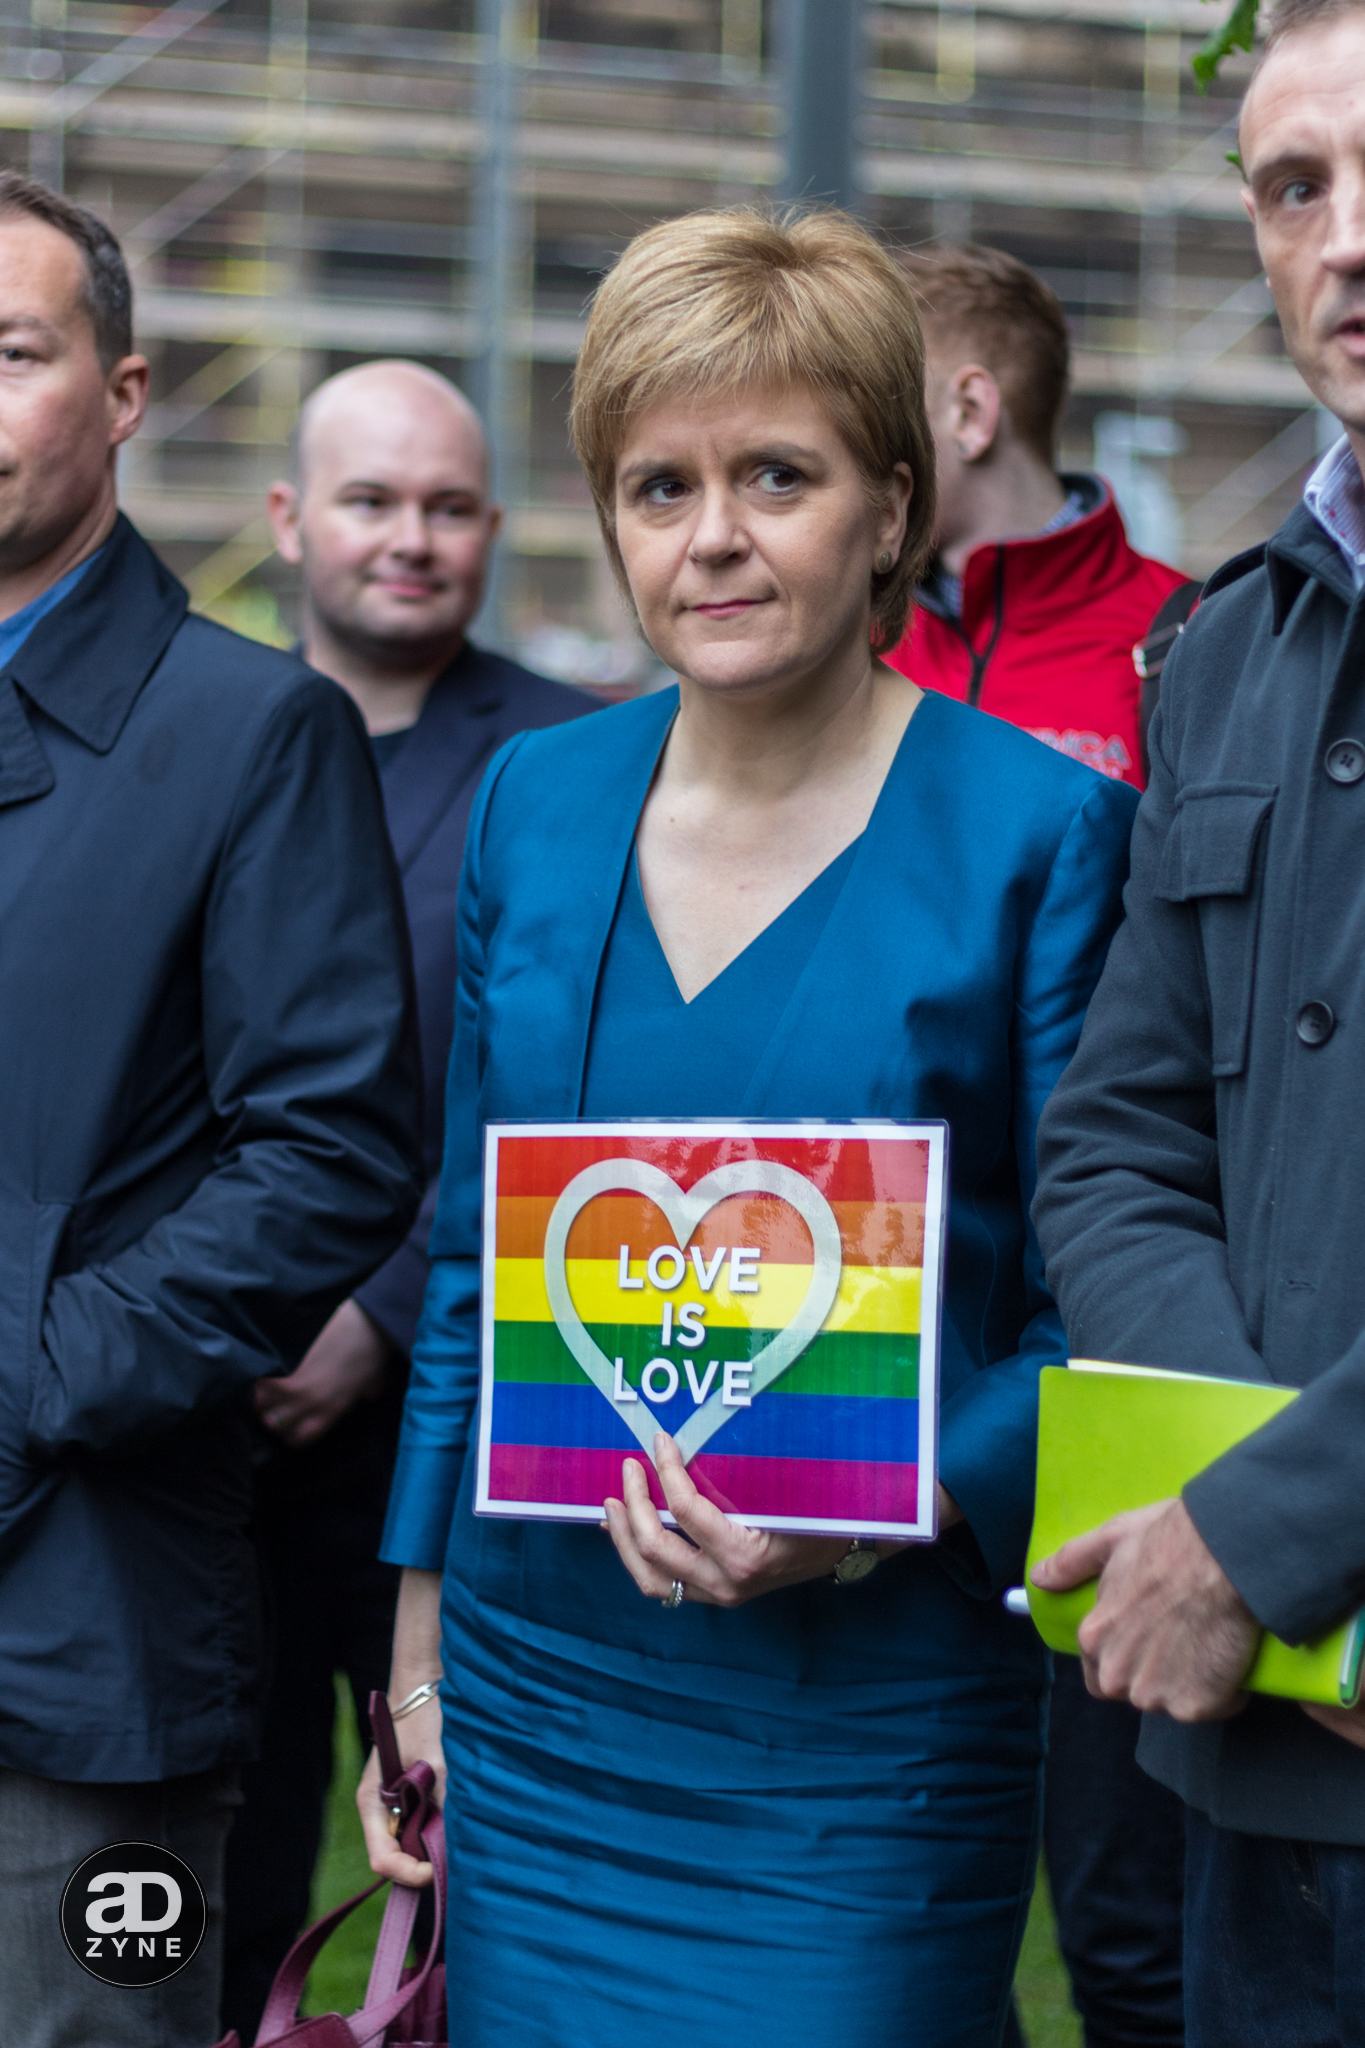 Nicola Sturgeon - Edinburgh Stands with Orlando